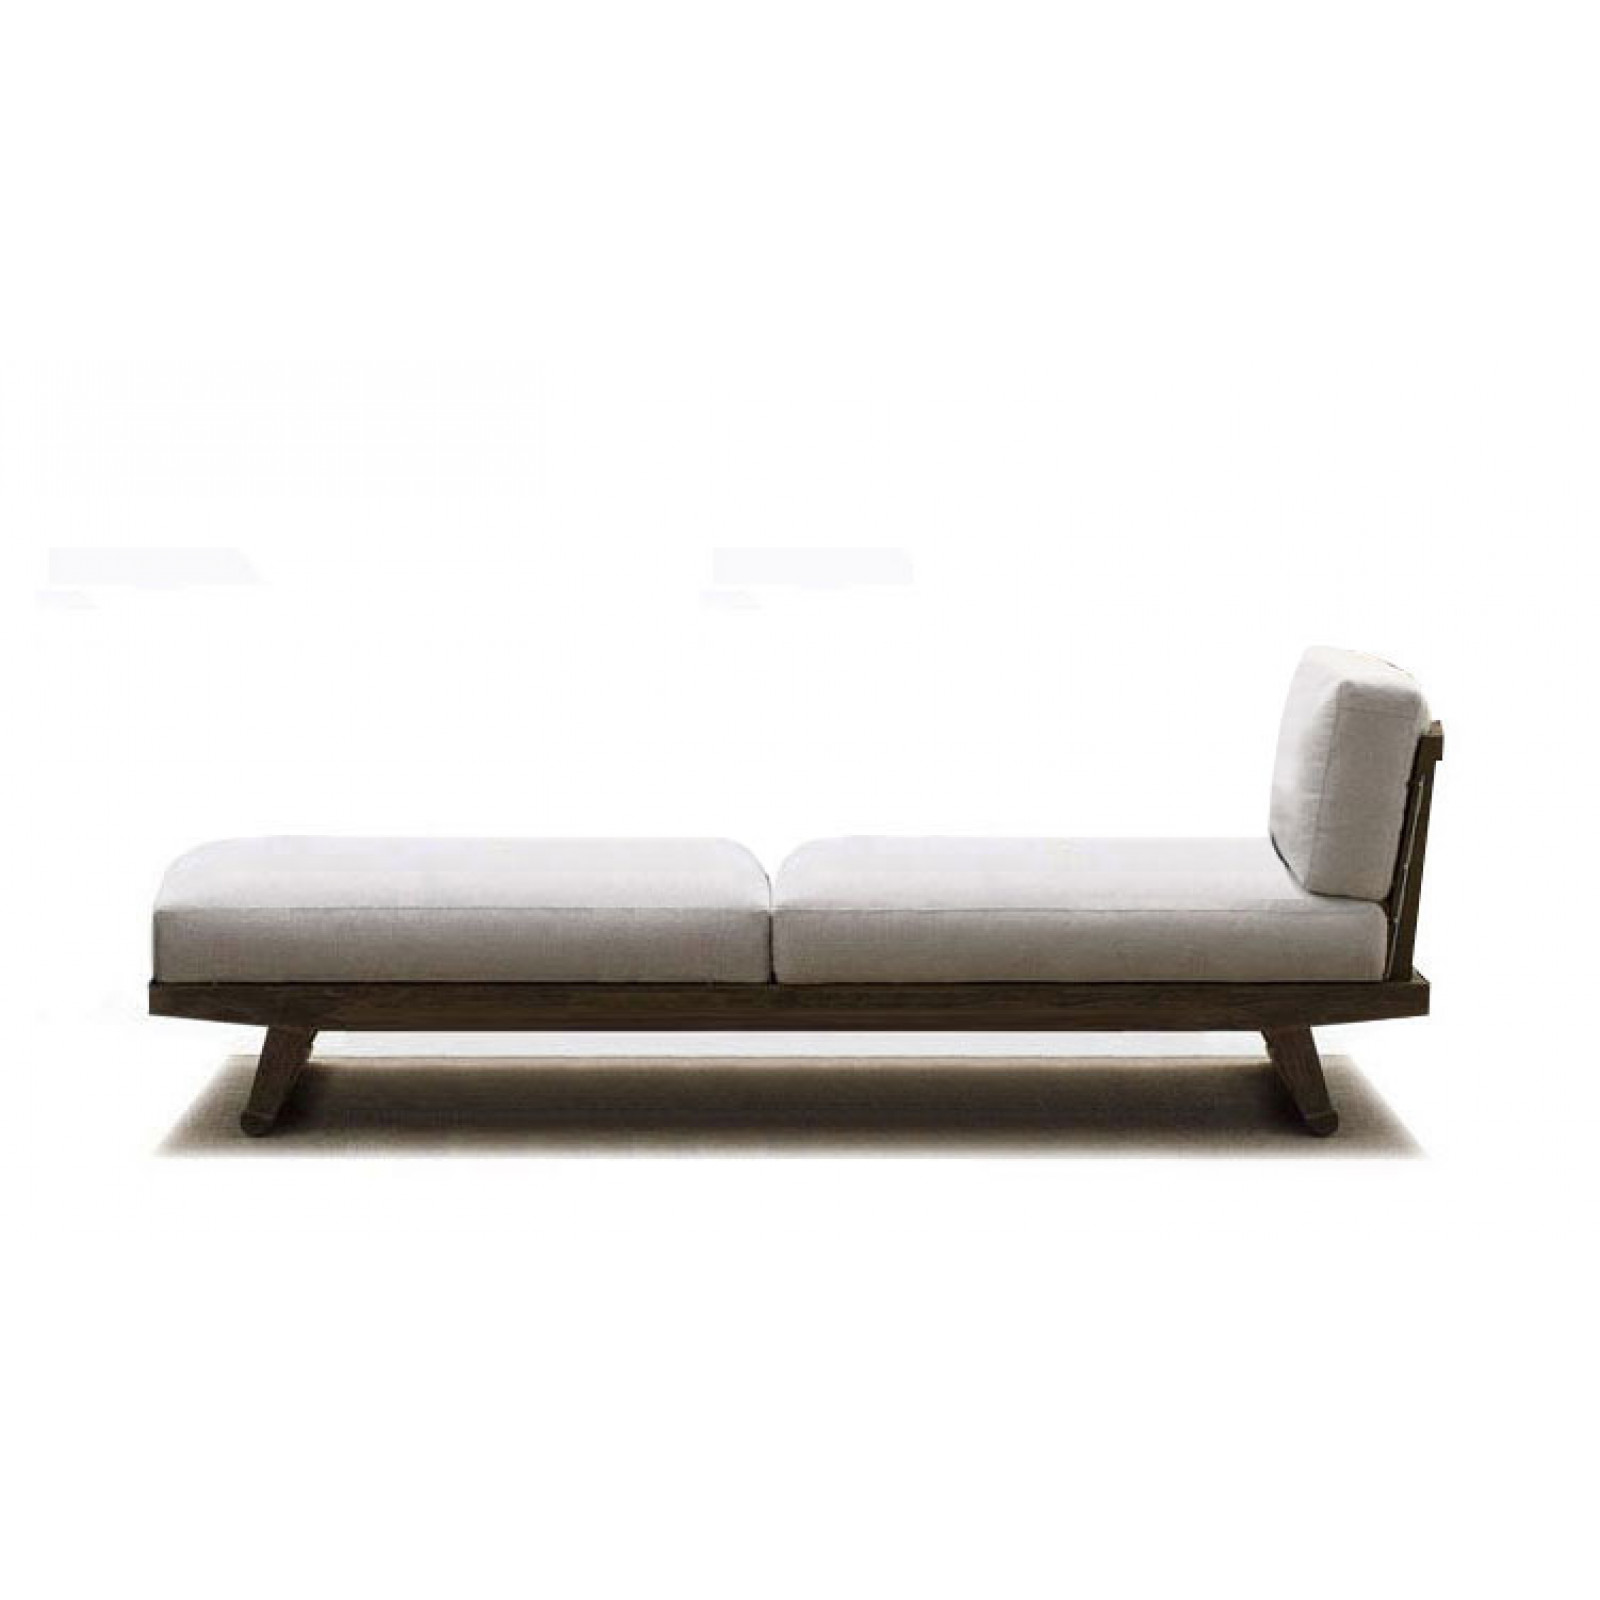 B&B Italia Gio Chaiselongue 197 cm rechts